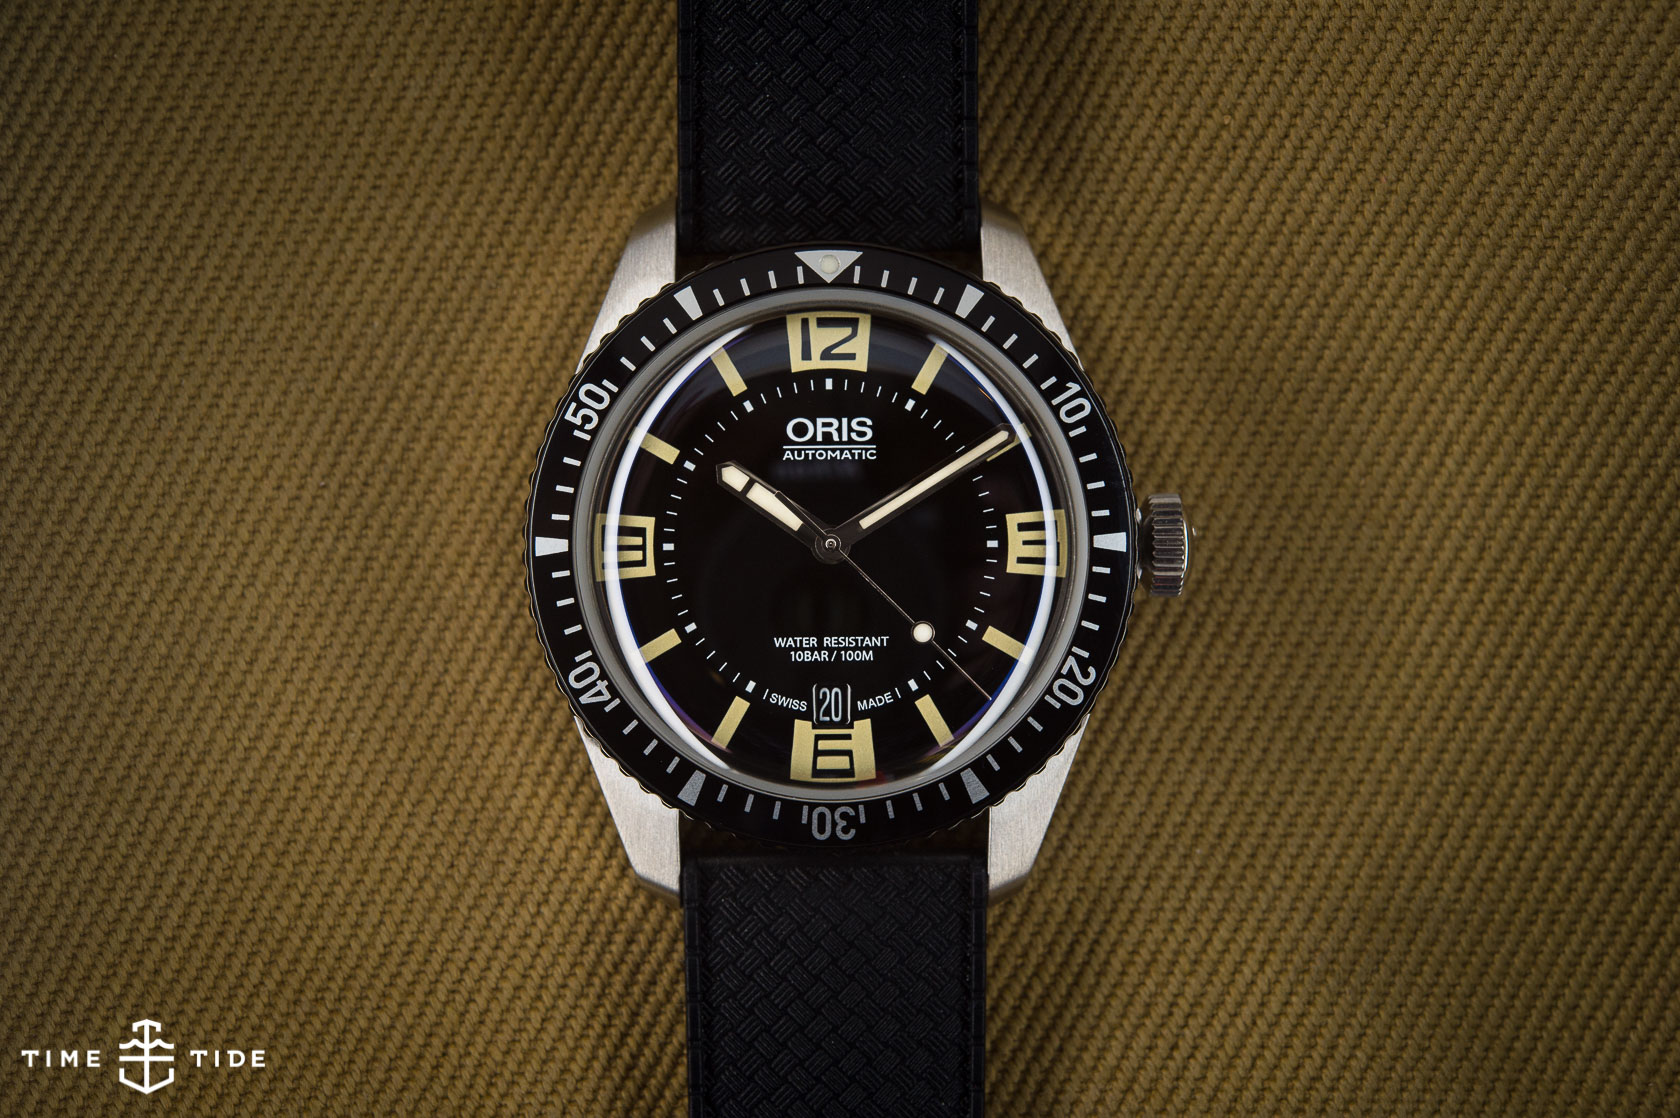 HANDS-ON: The Oris Divers Sixty-Five